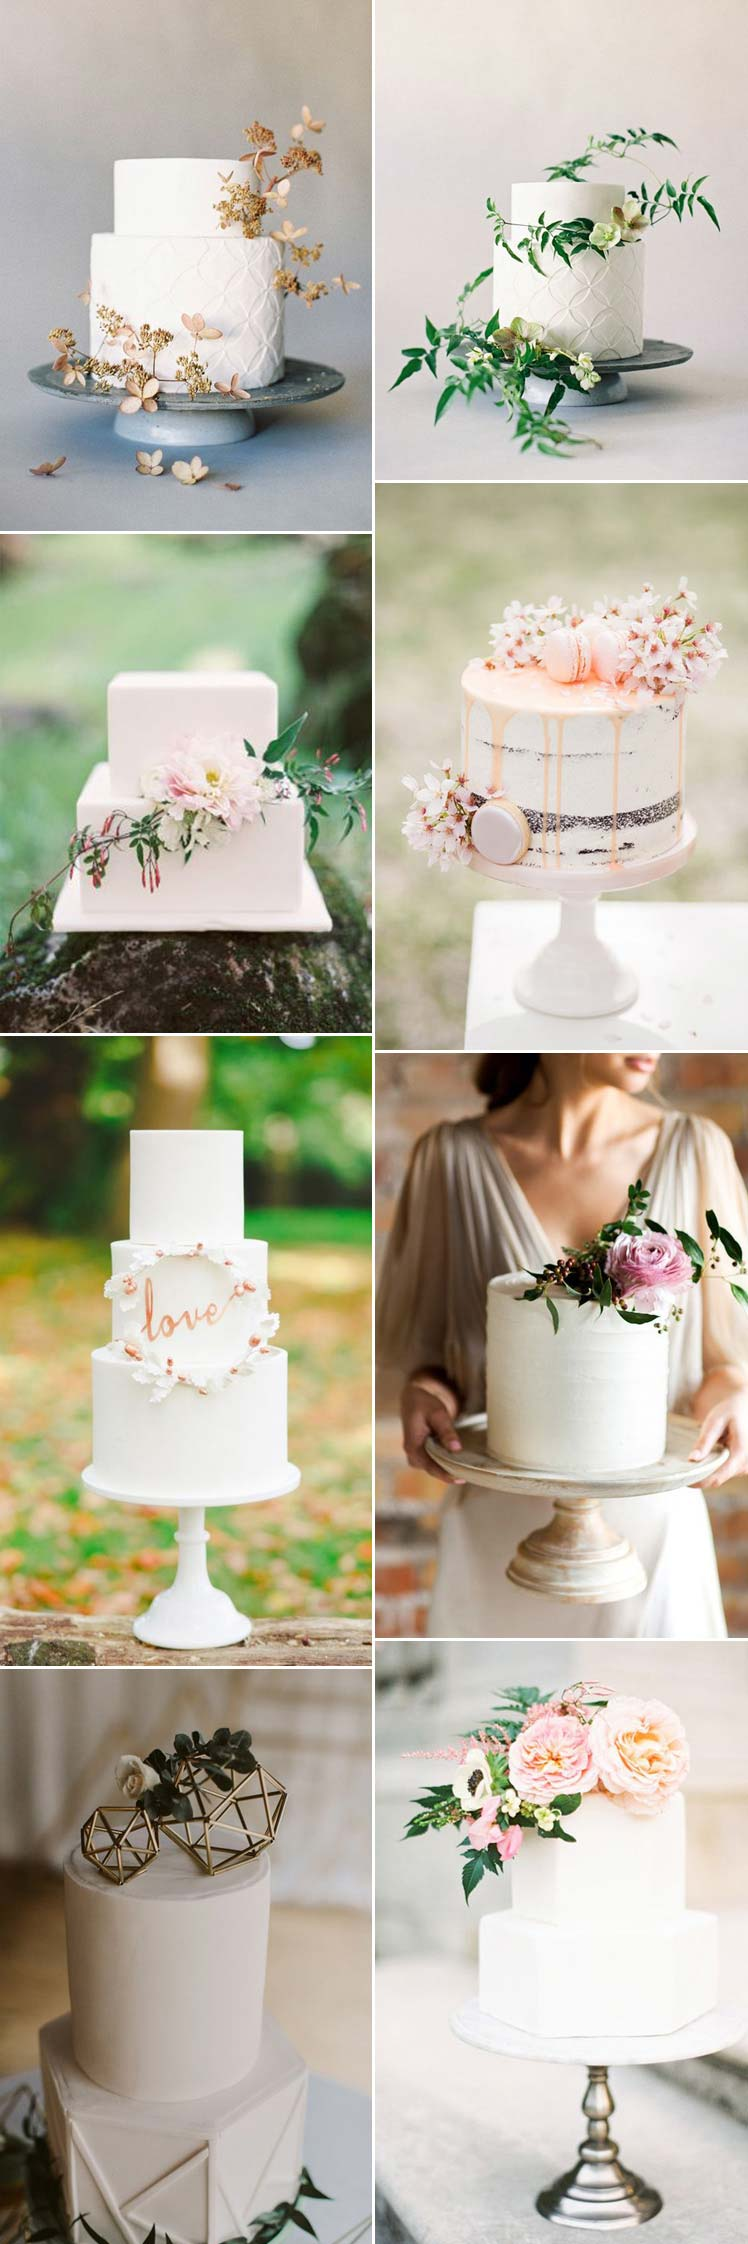 elegant non-traditional white wedding cakes